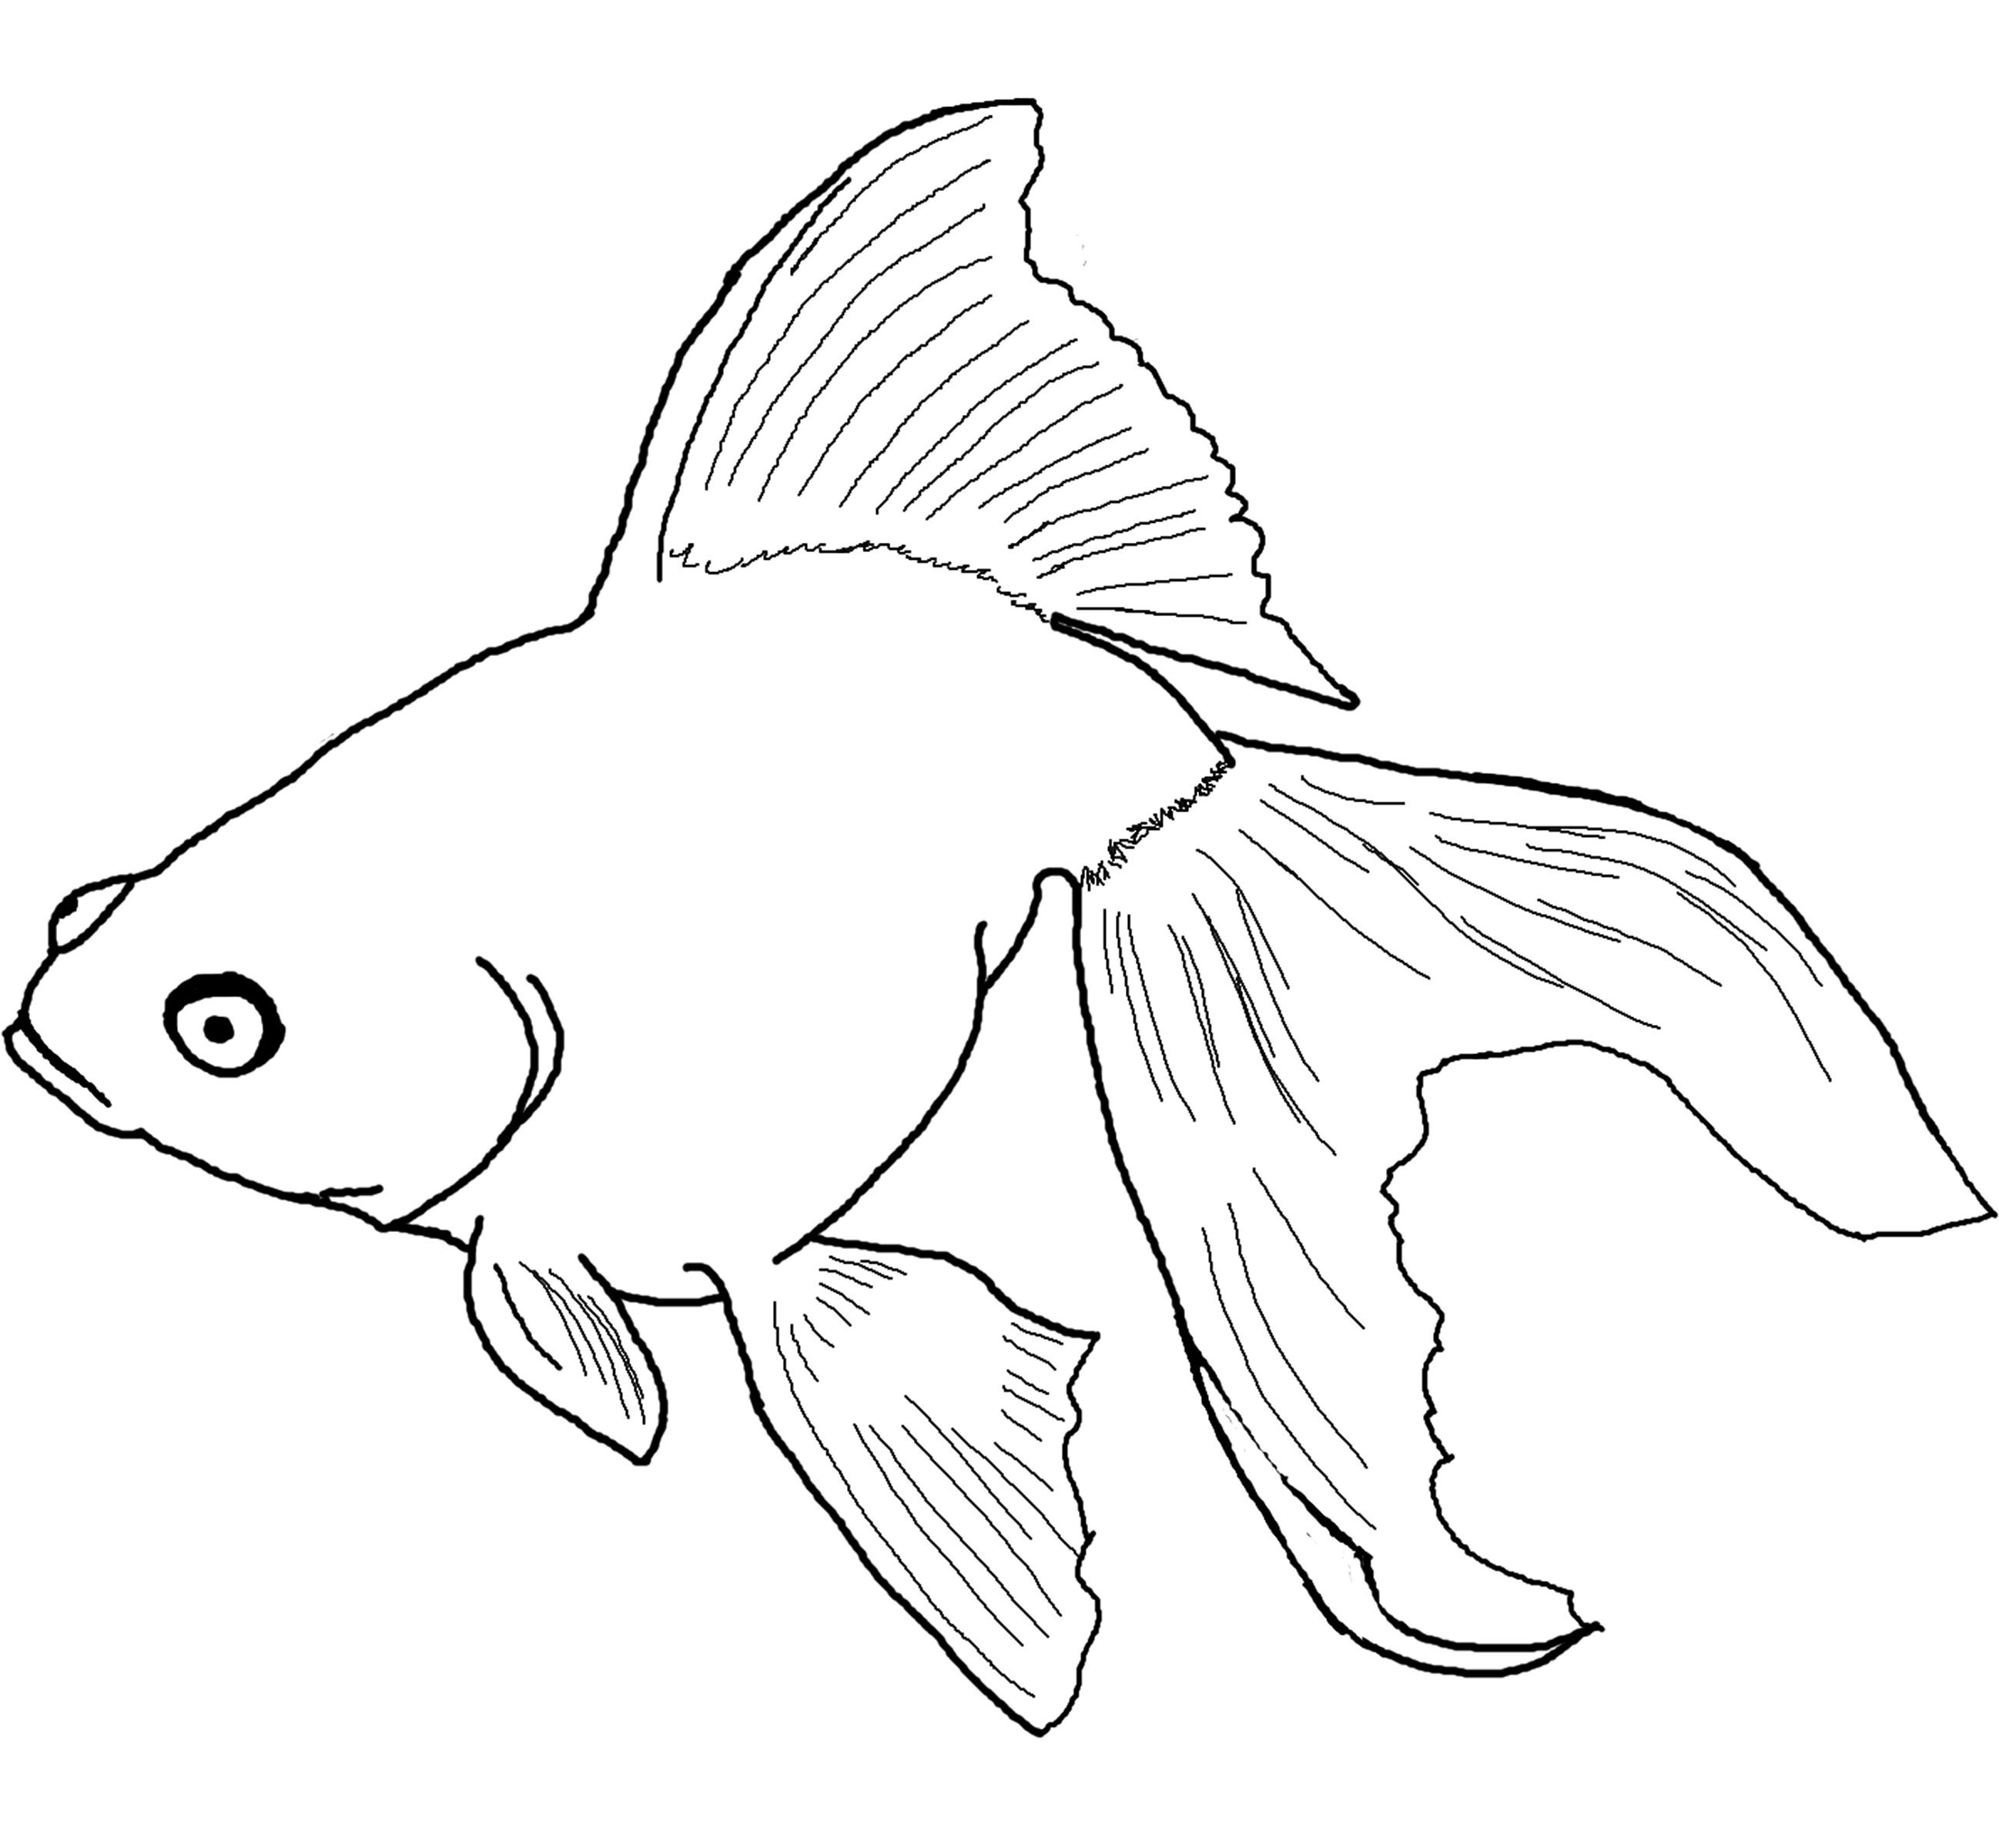 Rainbow Fish Coloring Pages Preschoolers Free Printable Fish Coloring Pages For Kids